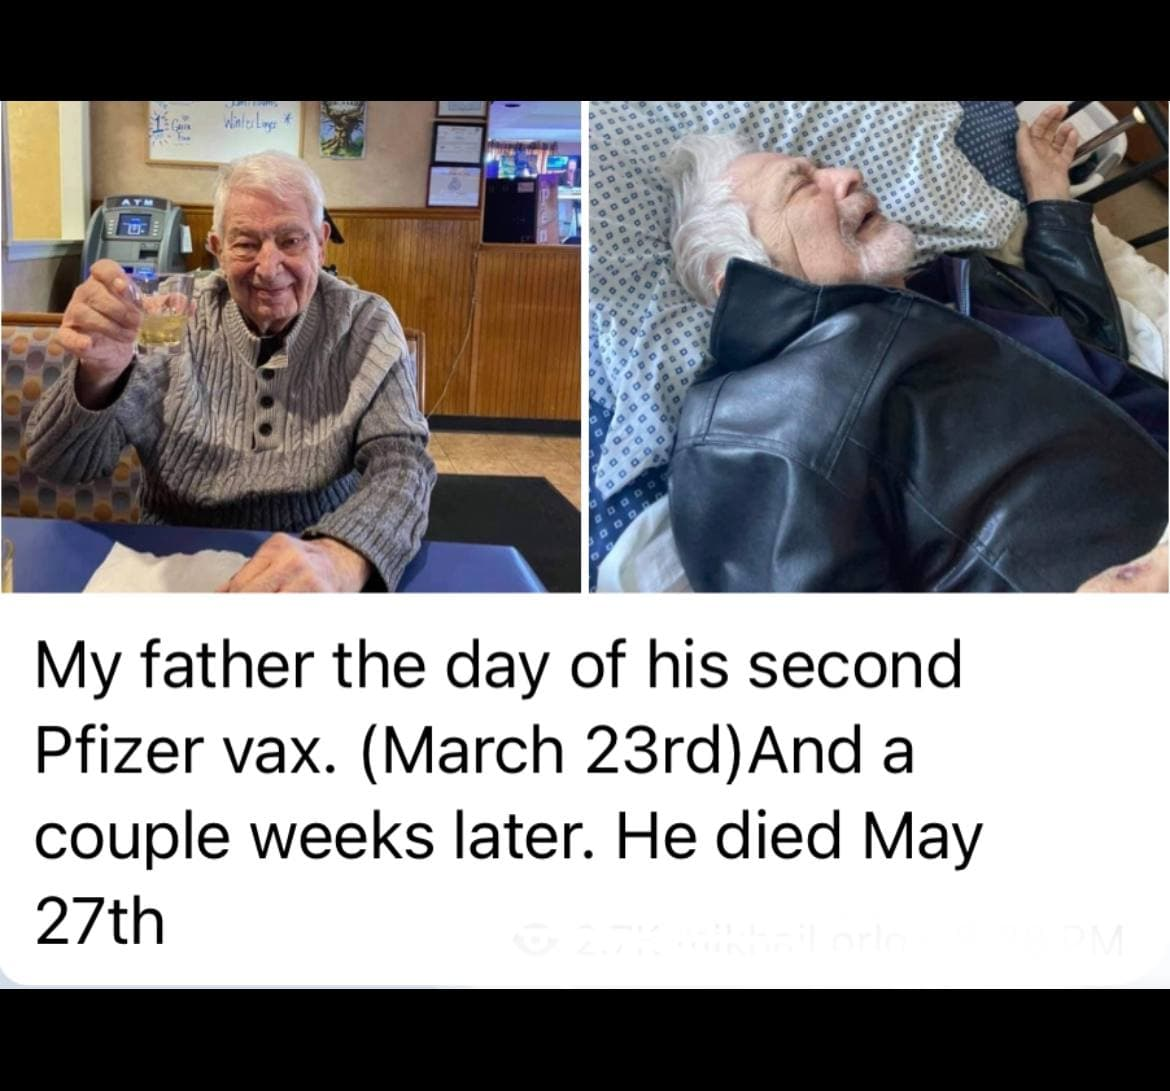 Father bedridden after two weeks